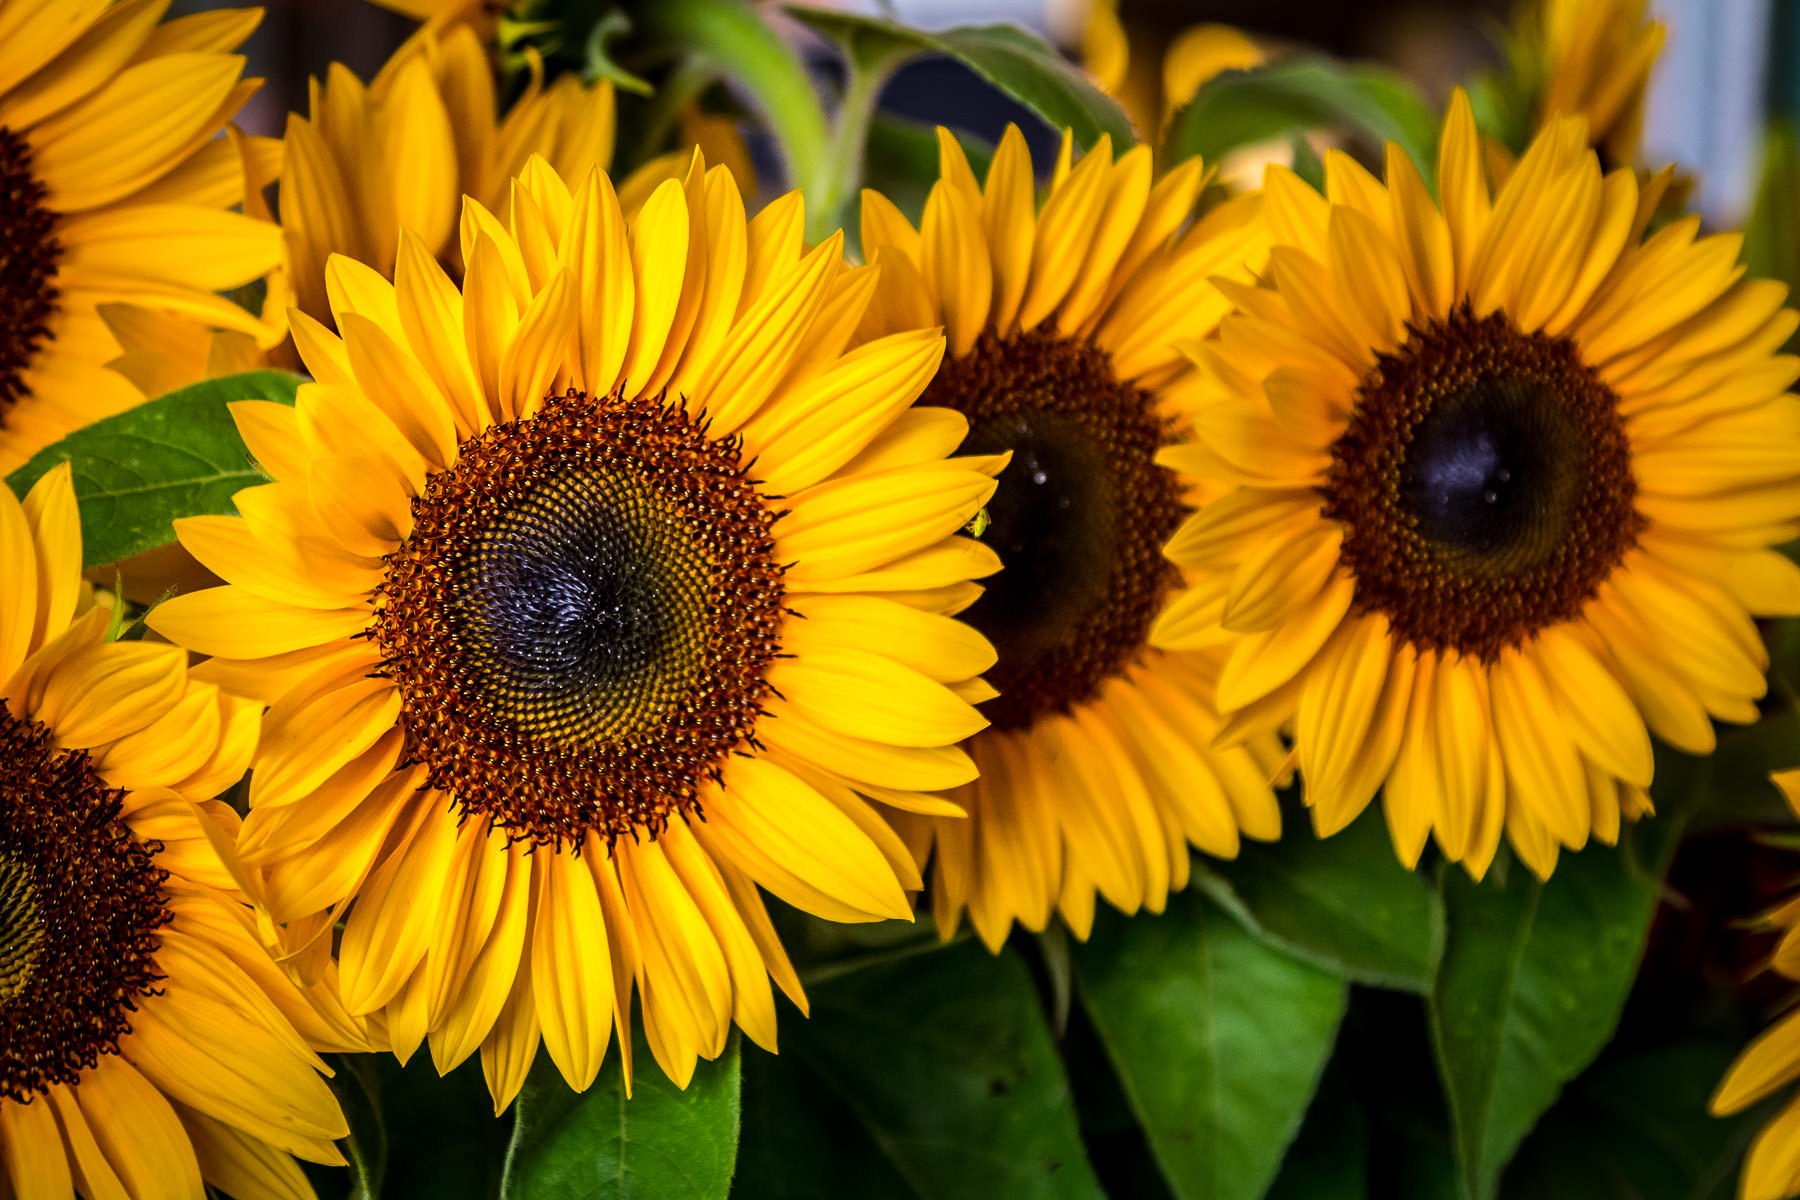 Sunflowers for sale at a florist at Seattle's Pike Place Market.